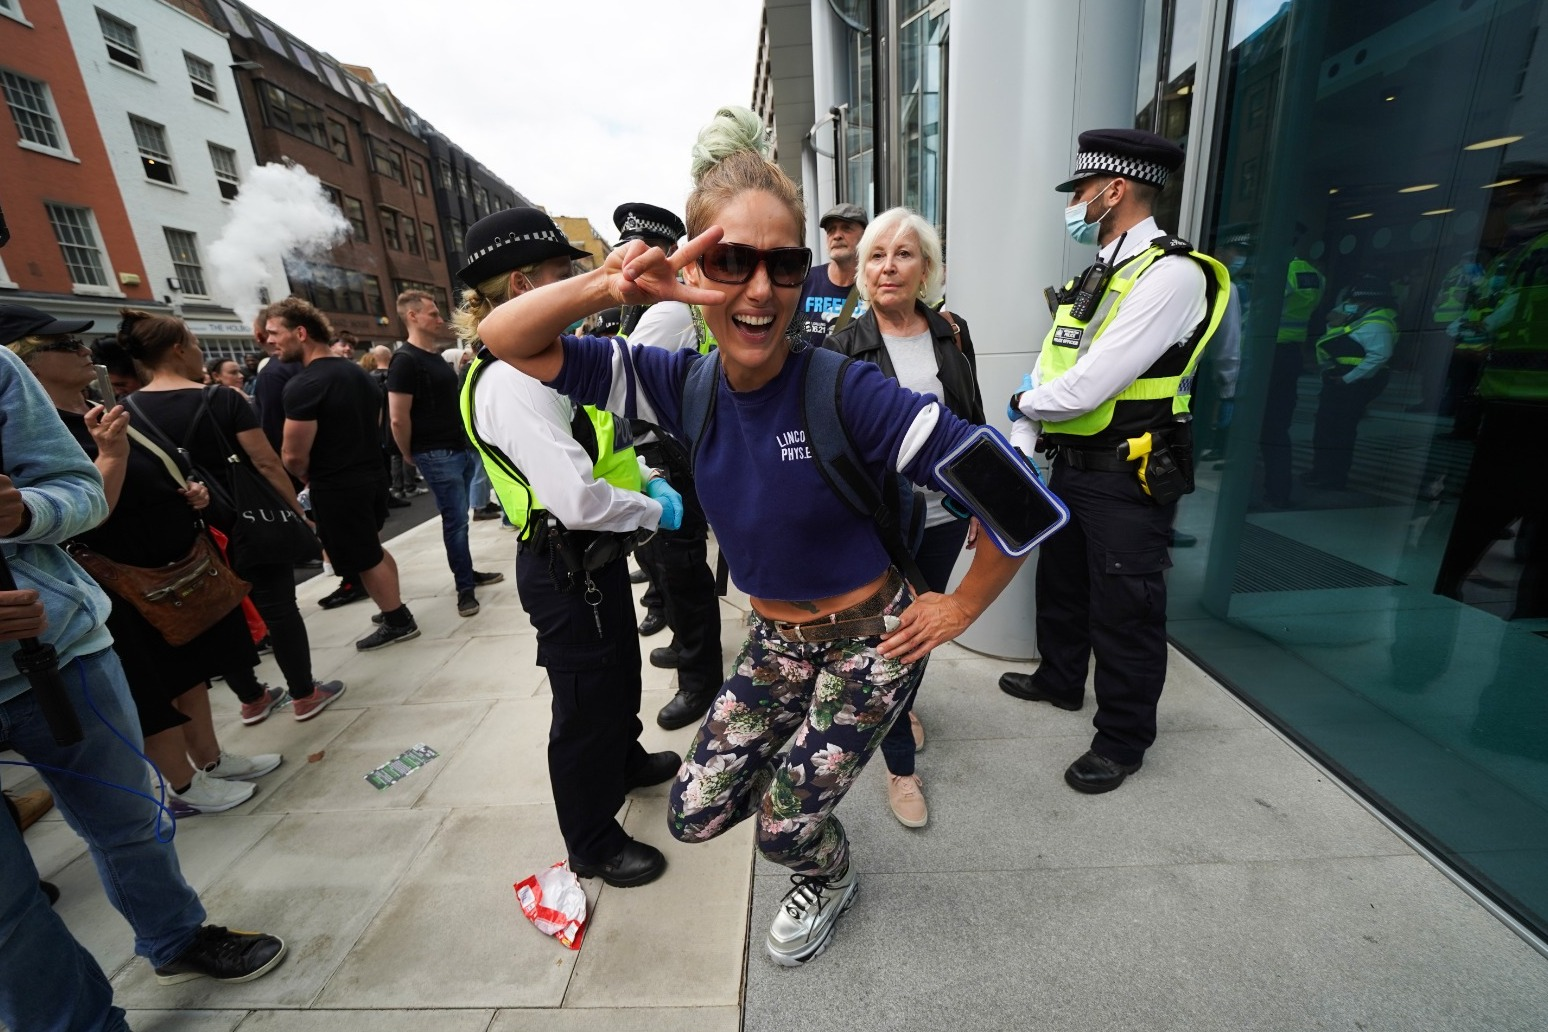 Anti-vaxx protesters 'force their way into ITN's London headquarters'